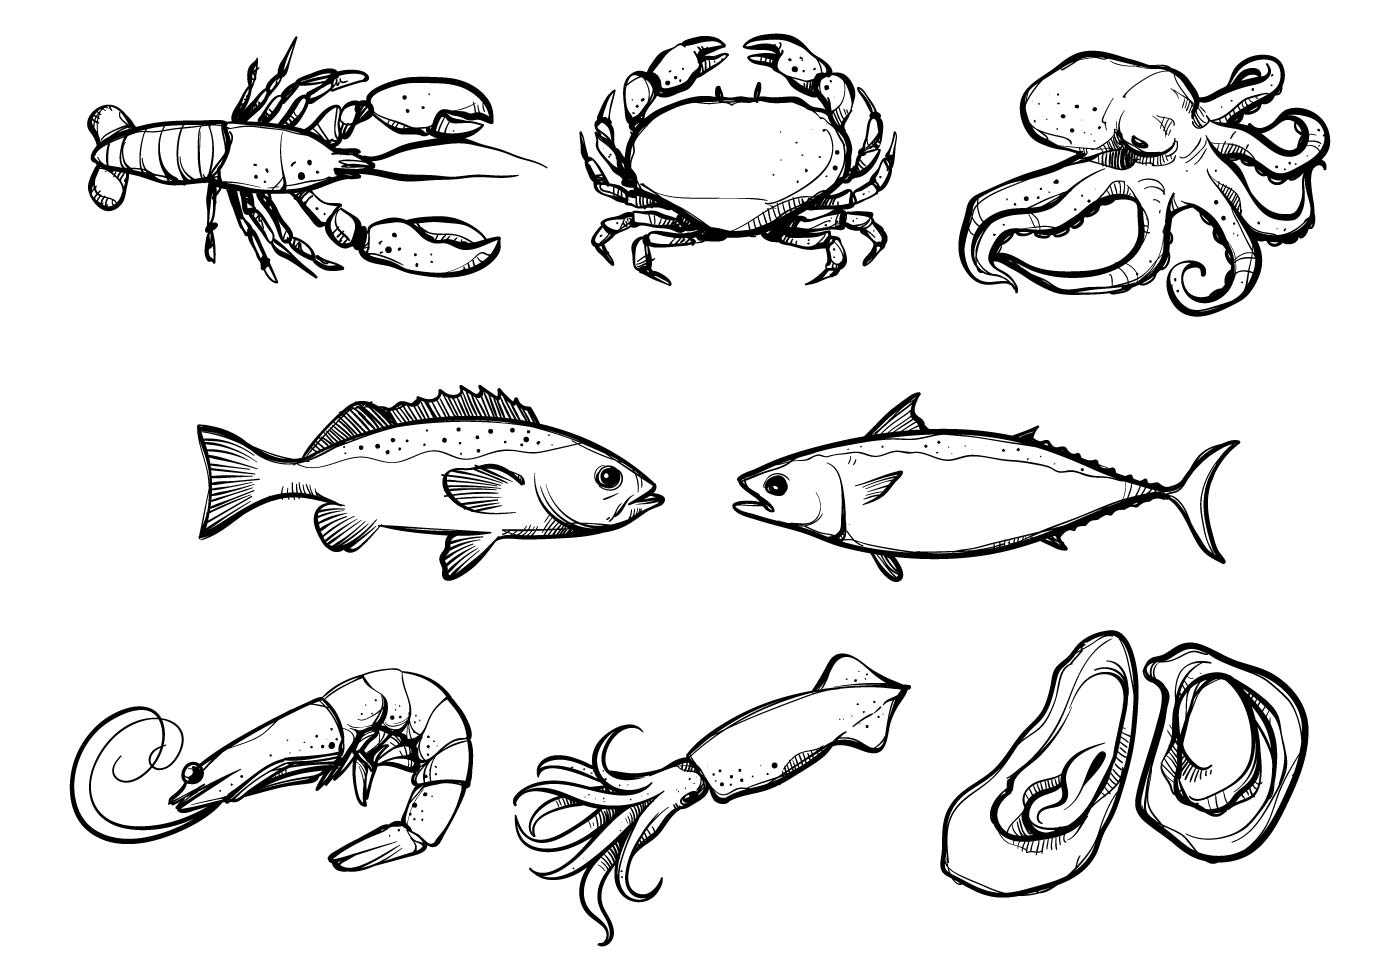 Seafood Vectors - Download Free Vector Art, Stock Graphics & Images